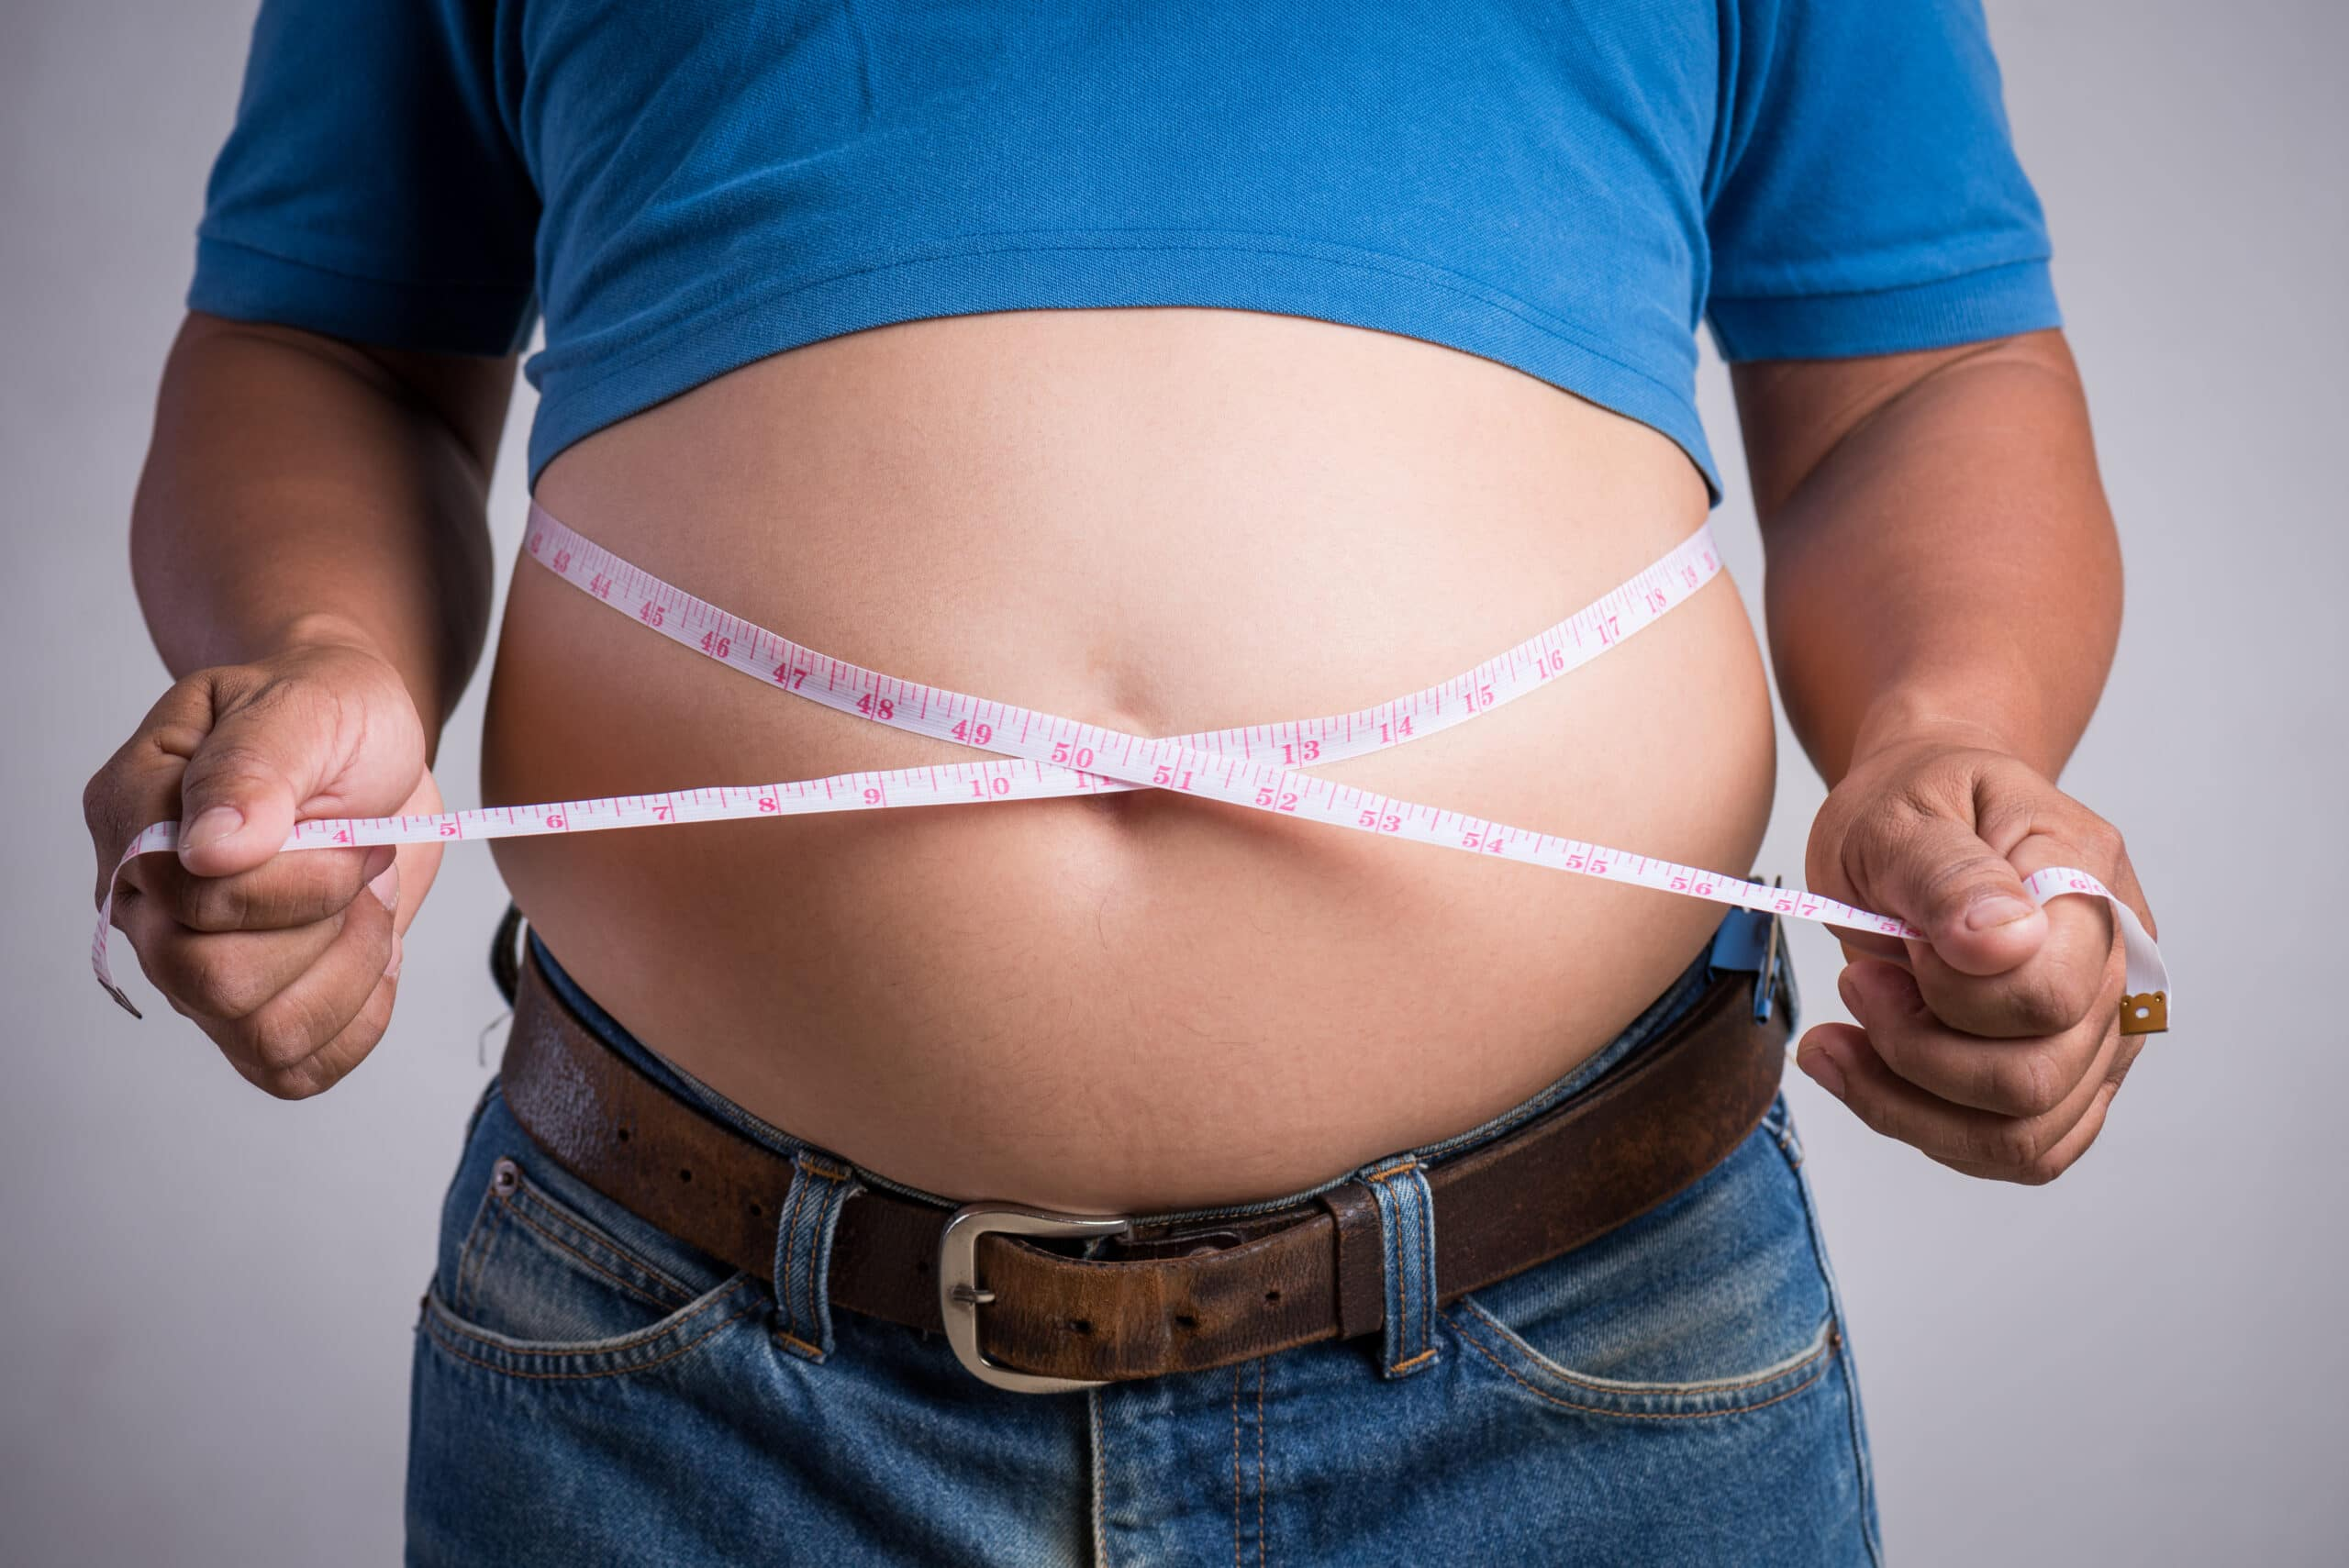 Overweight or fat adult man in very tight jeans with measuring tape on a gray background. Healthcare, medicine concept.